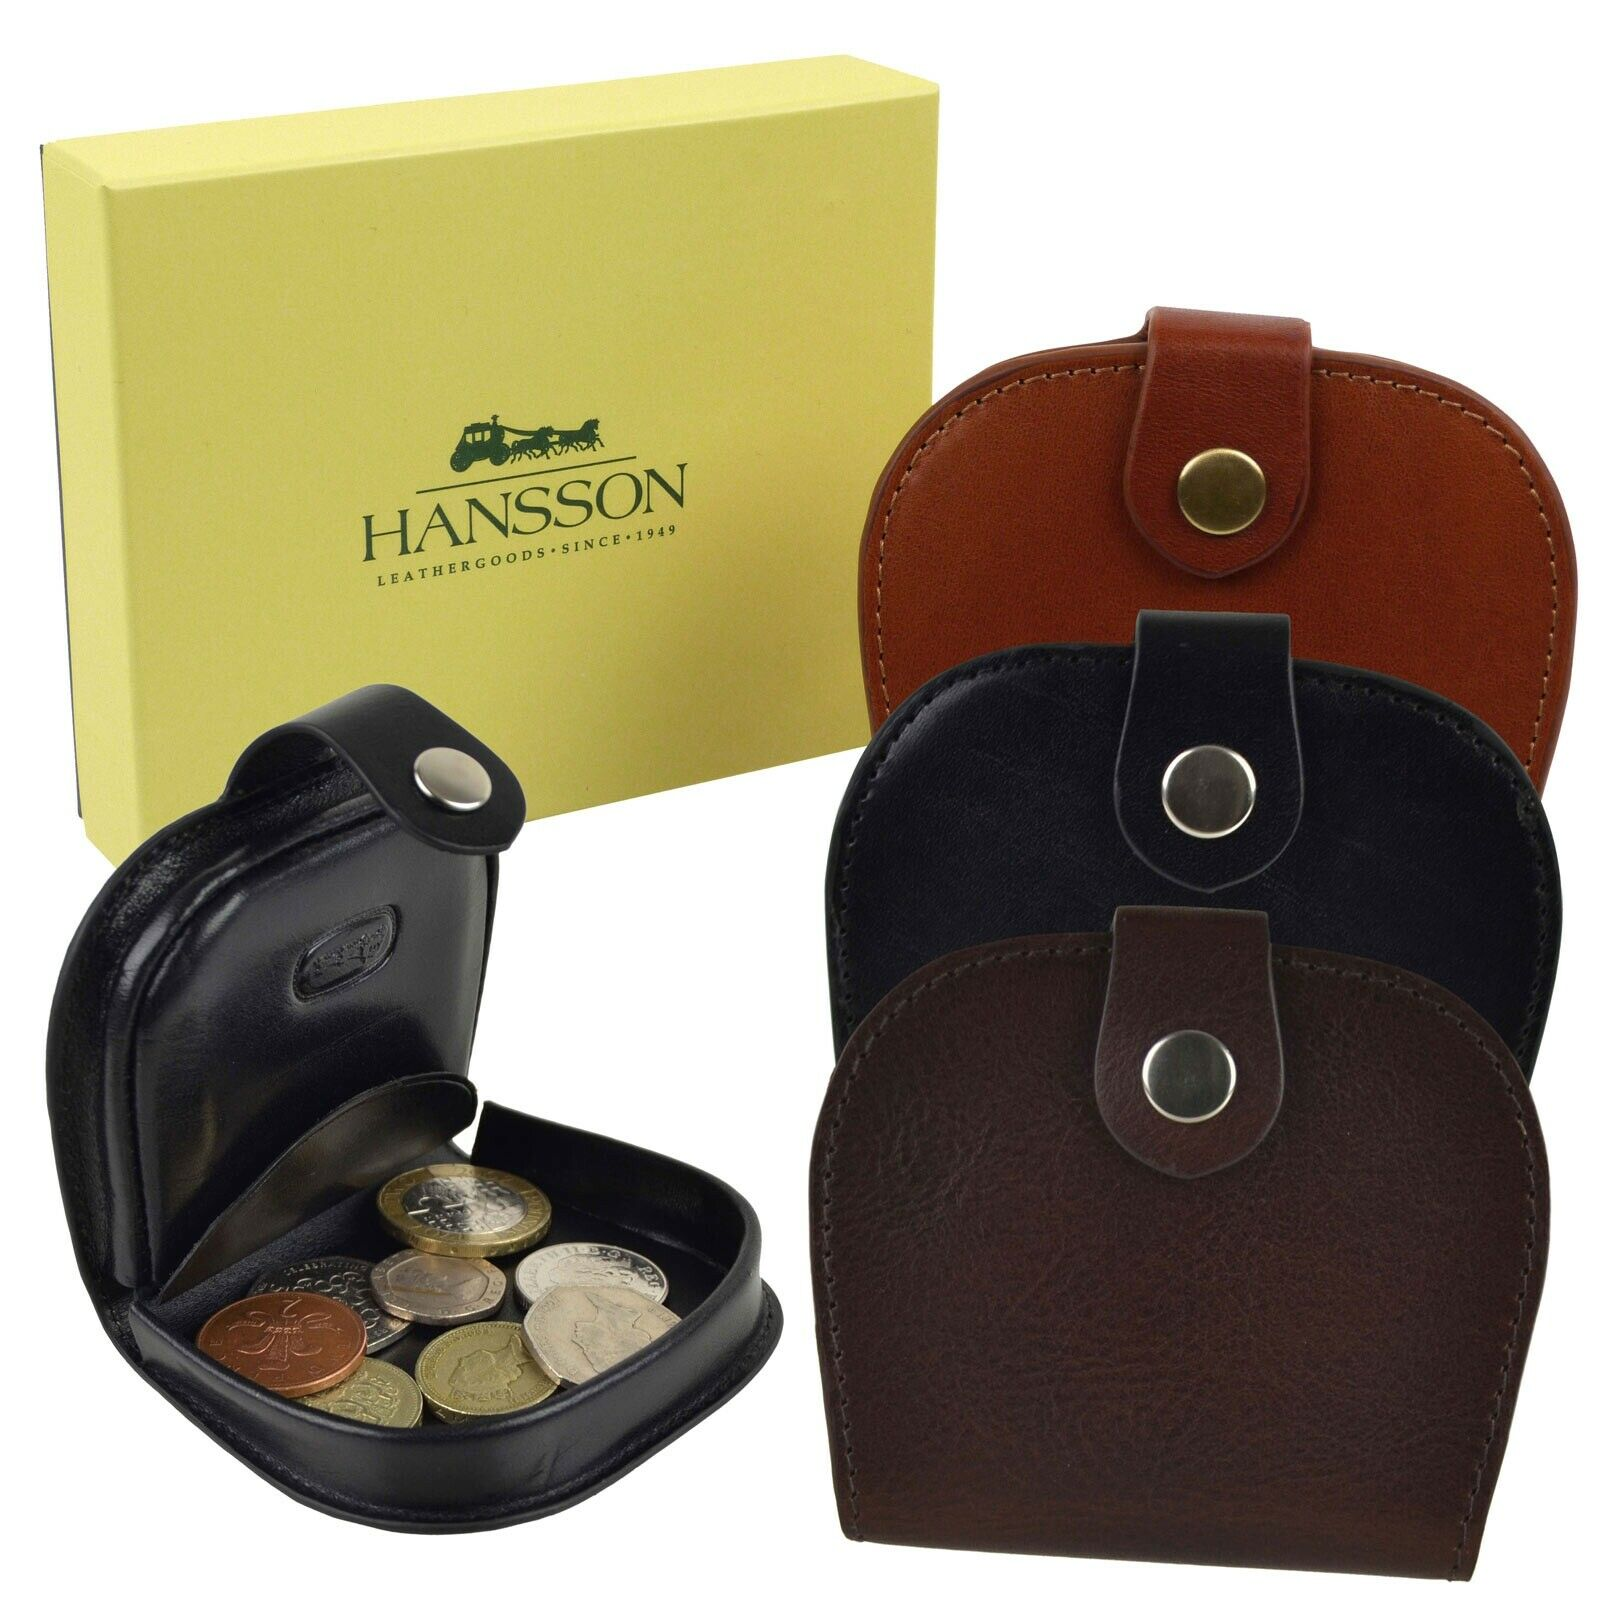 Mens Italian Leather Coin Tray Change Wallet/Purse by Hansson Pocket Gift Boxed